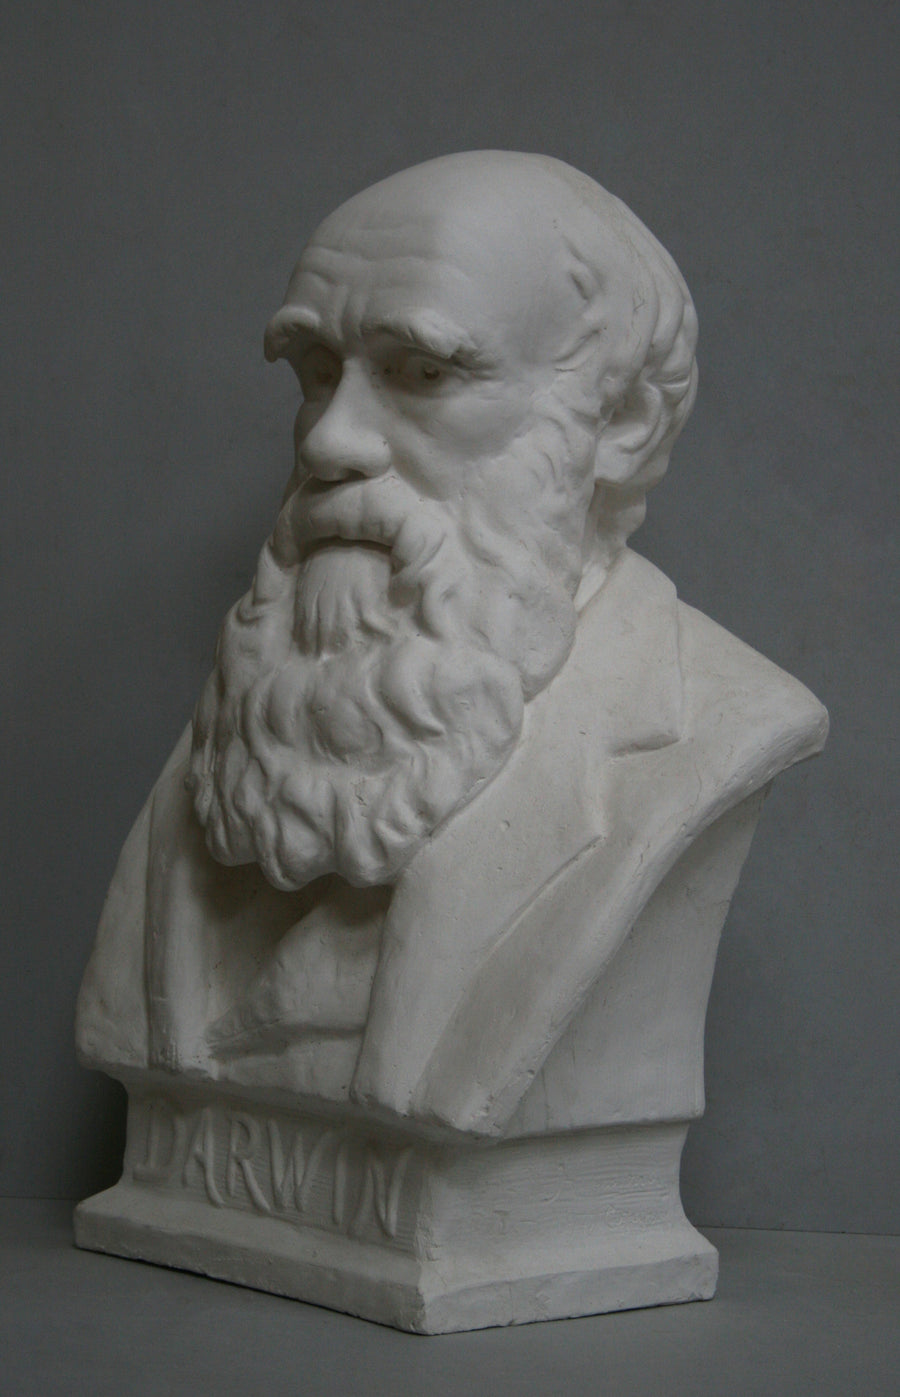 photo with gray background of plaster cast bust of man, namely Charles Darwin, with suit jacket and long beard